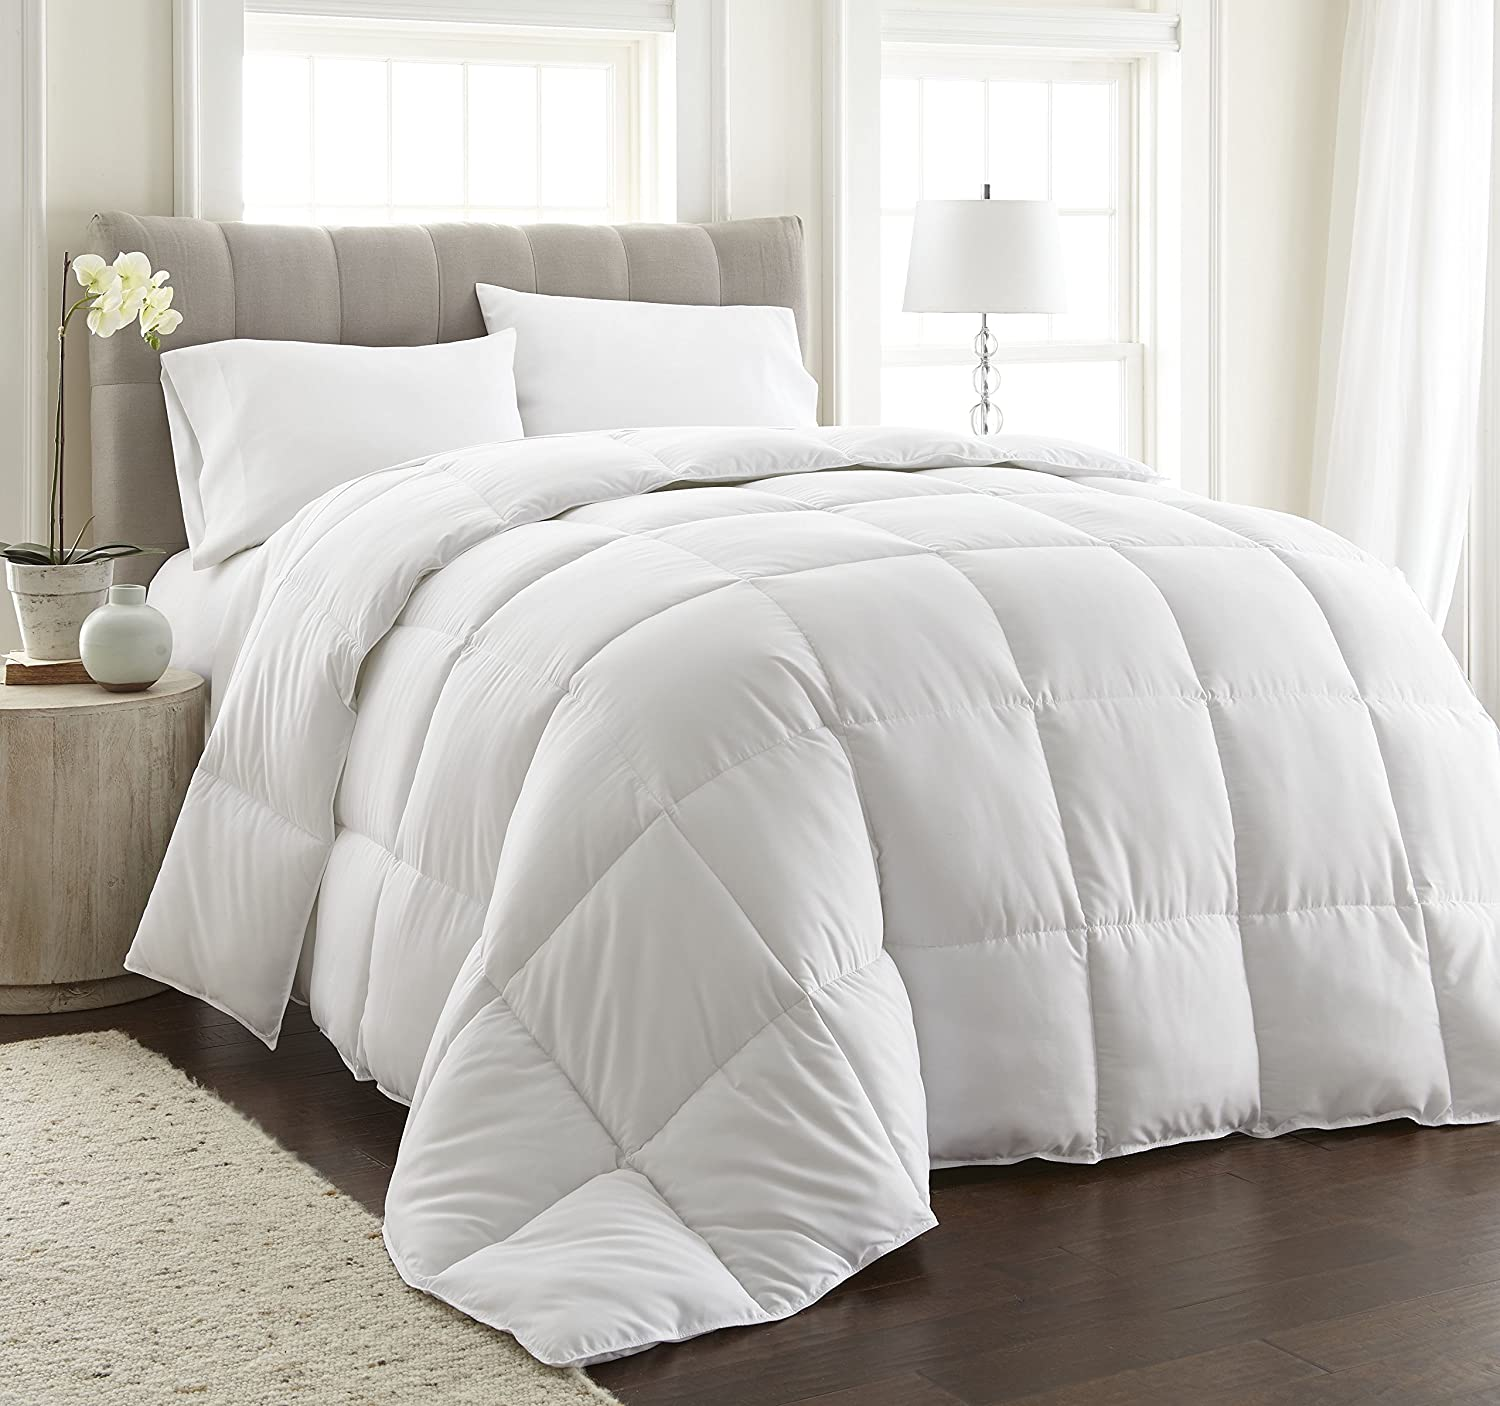 free solid today shipping bath cotton down comforter product color bedding vcny overstock king colored